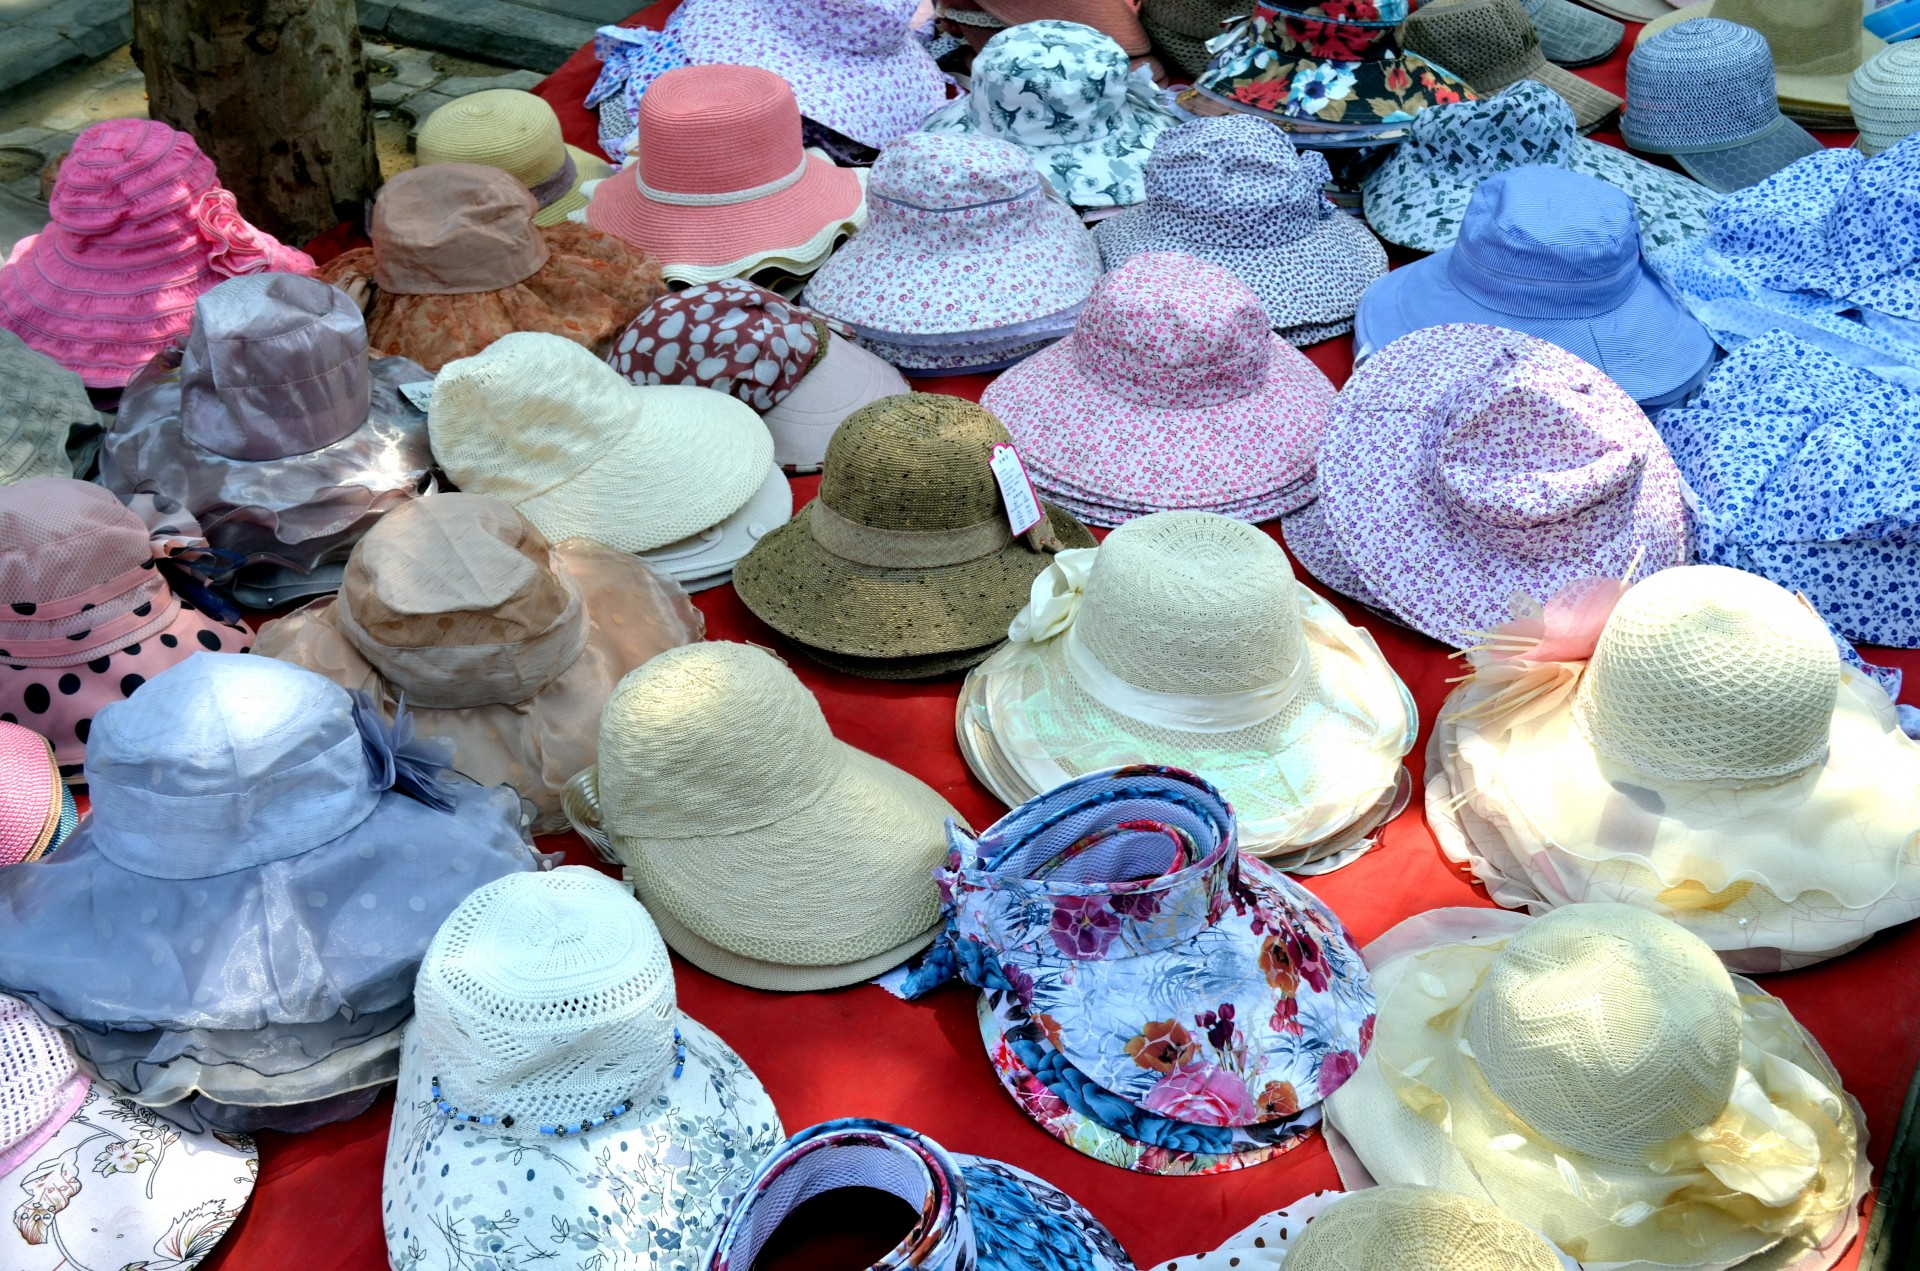 Hats, Summer, Heat Relief Safety, Straw Hats